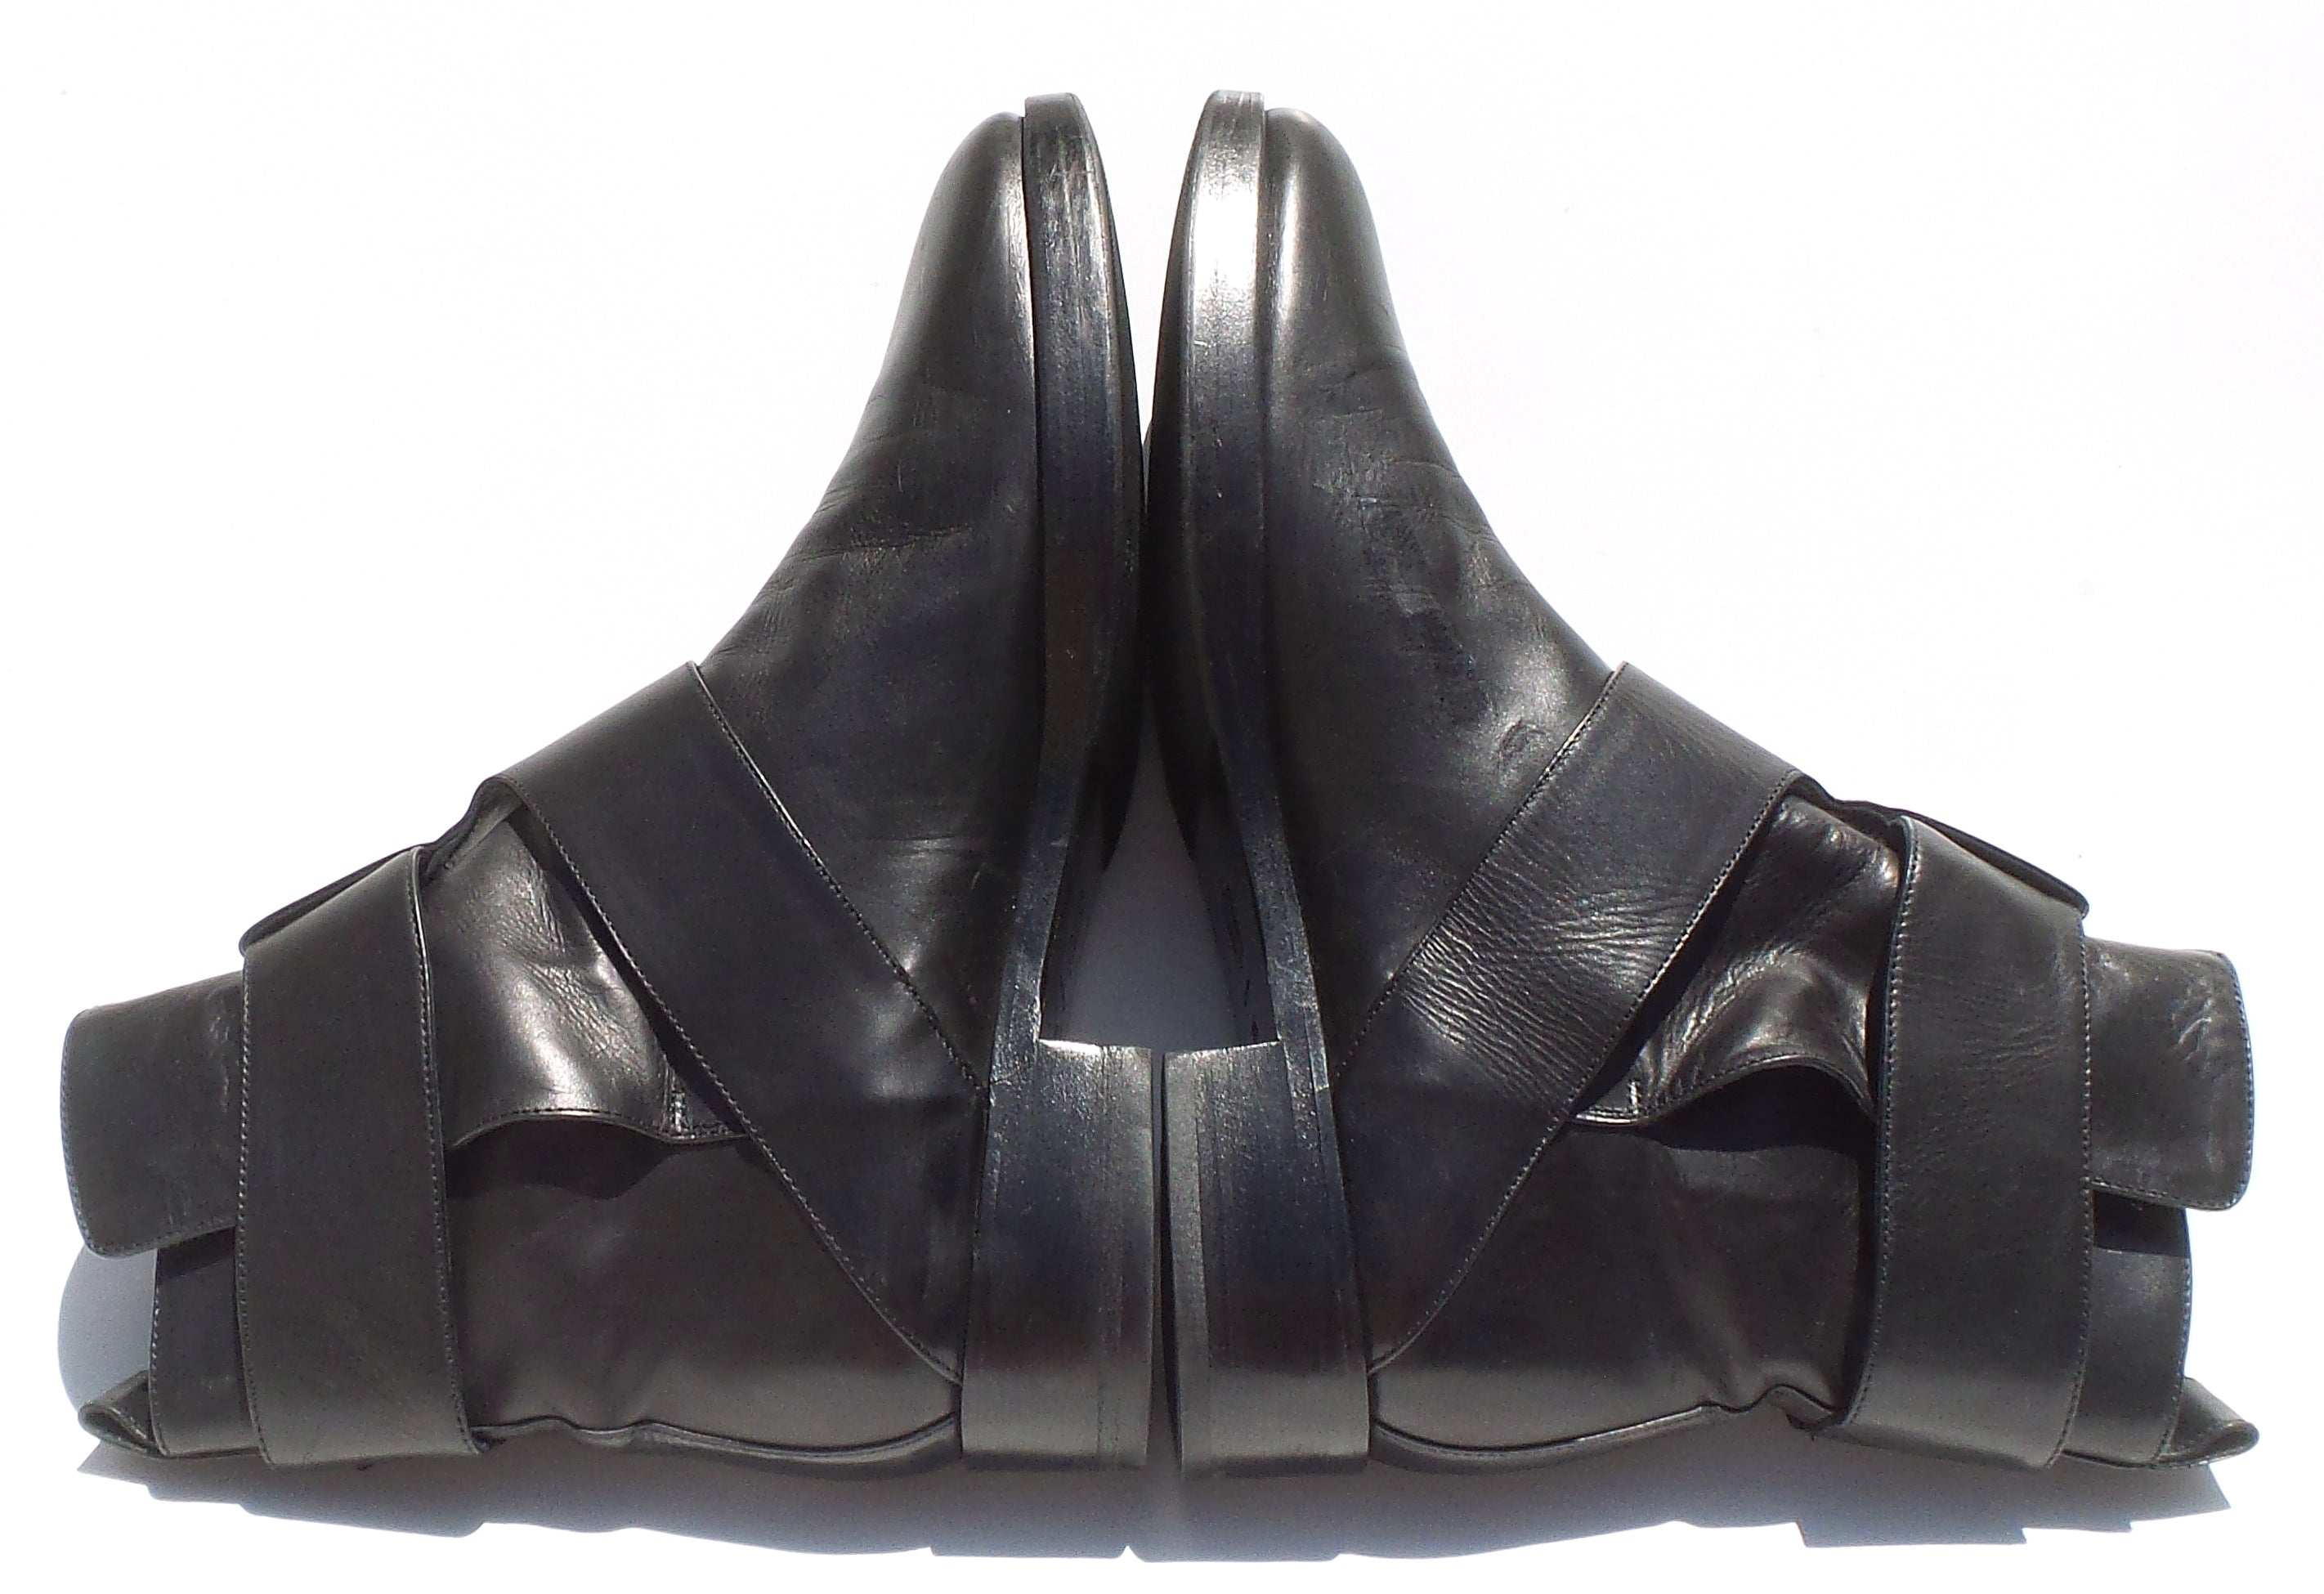 PIERRE HARDY Black Leather Round Toe Double Buckle Low Heel Ankle Boots IT 38.5